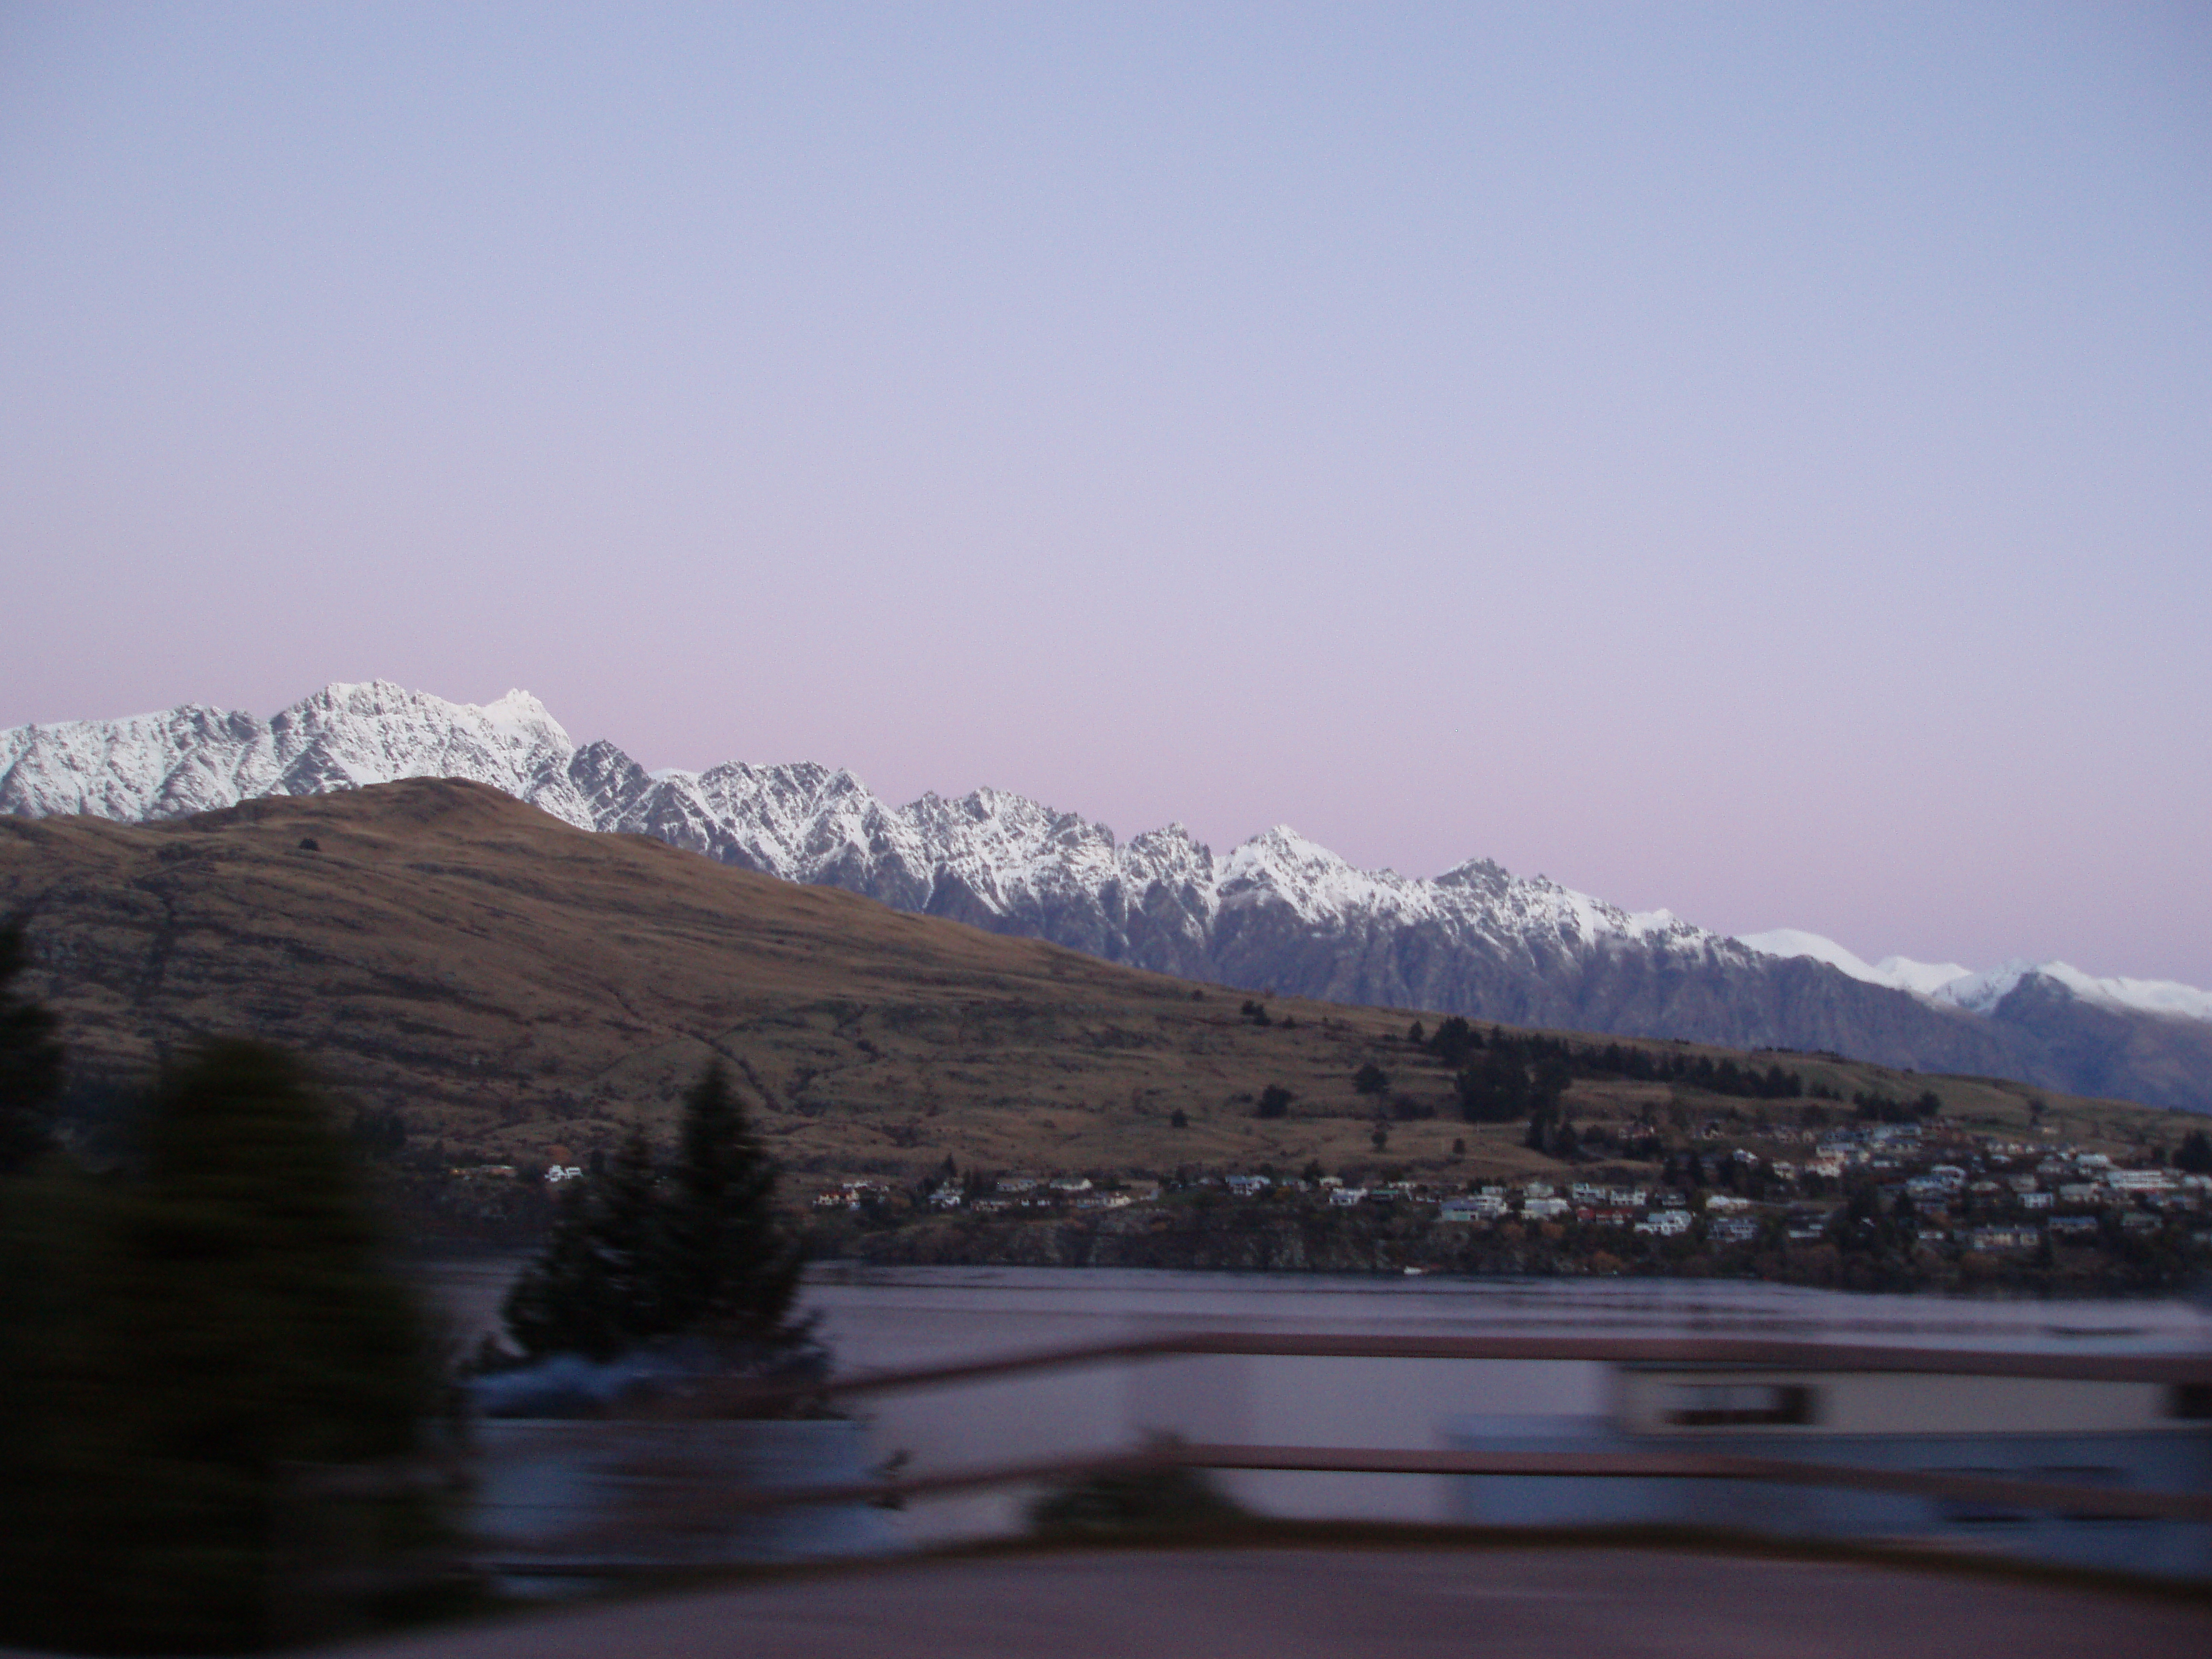 remarkables mountains range at dusk capped with winter snow